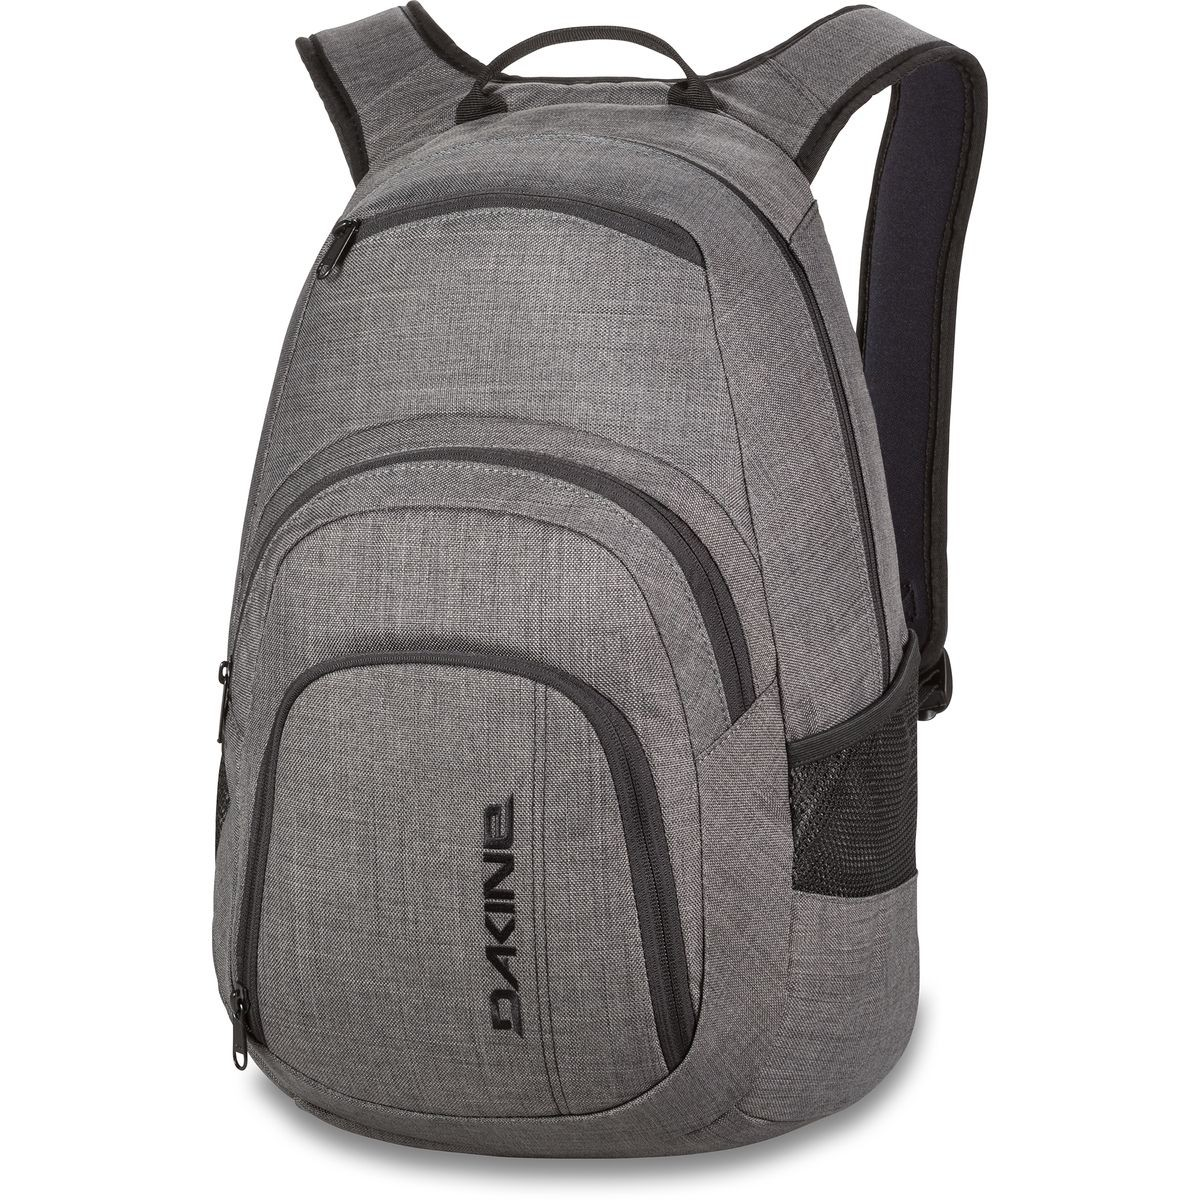 Campus 25L Backpack - Carbon